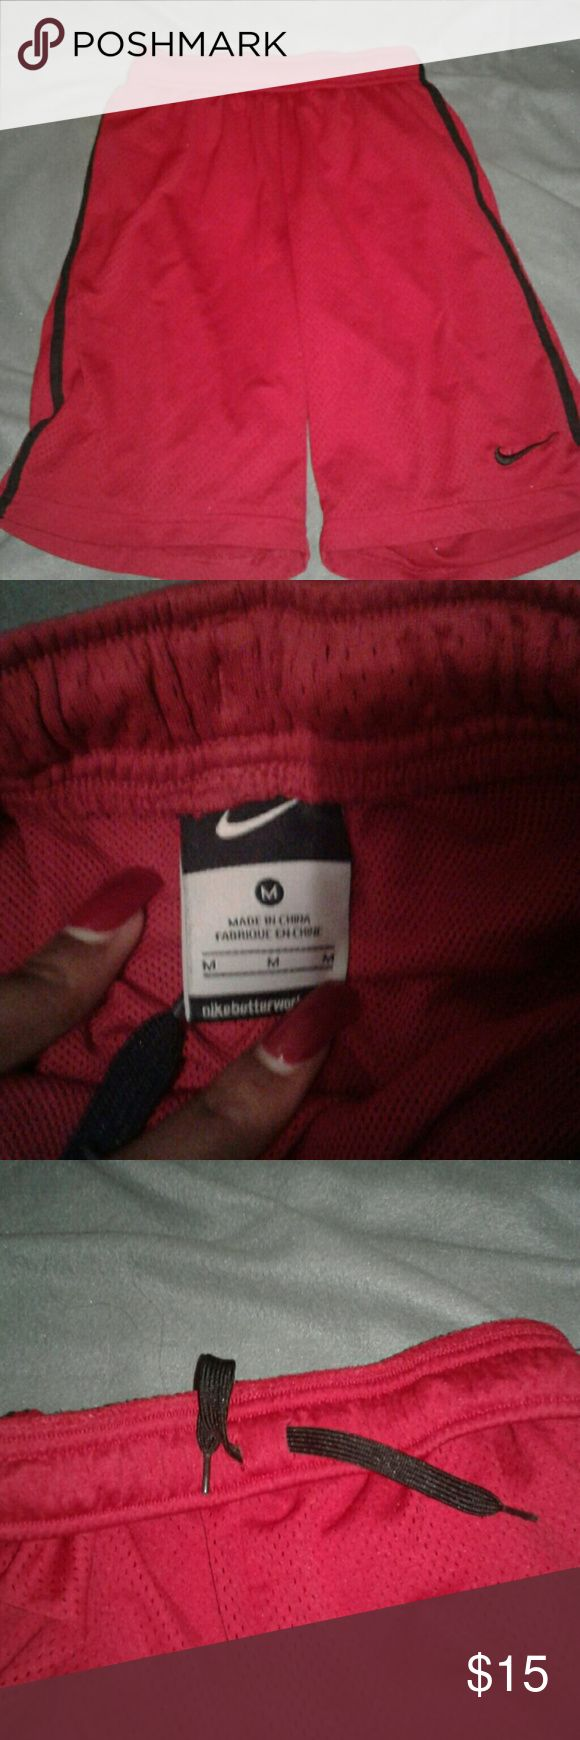 Nike basketball shorts Red & black nike shorts good condition and offer is welcome Nike Other